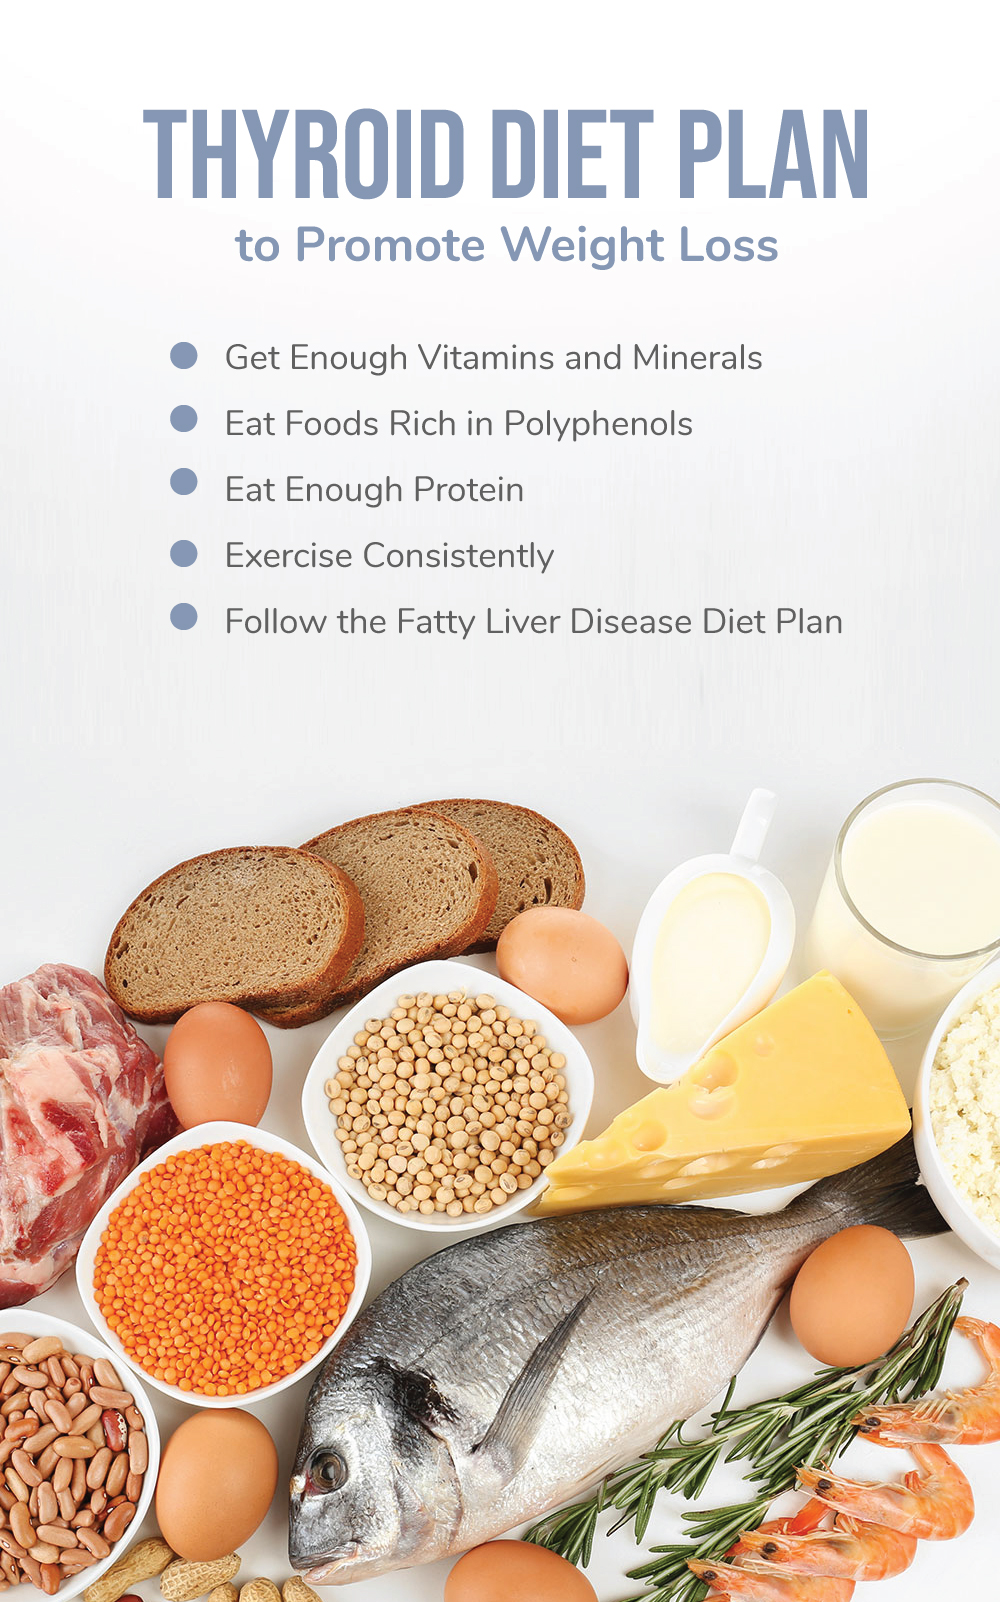 Thyroid Diet Plan to Promote Weight Loss